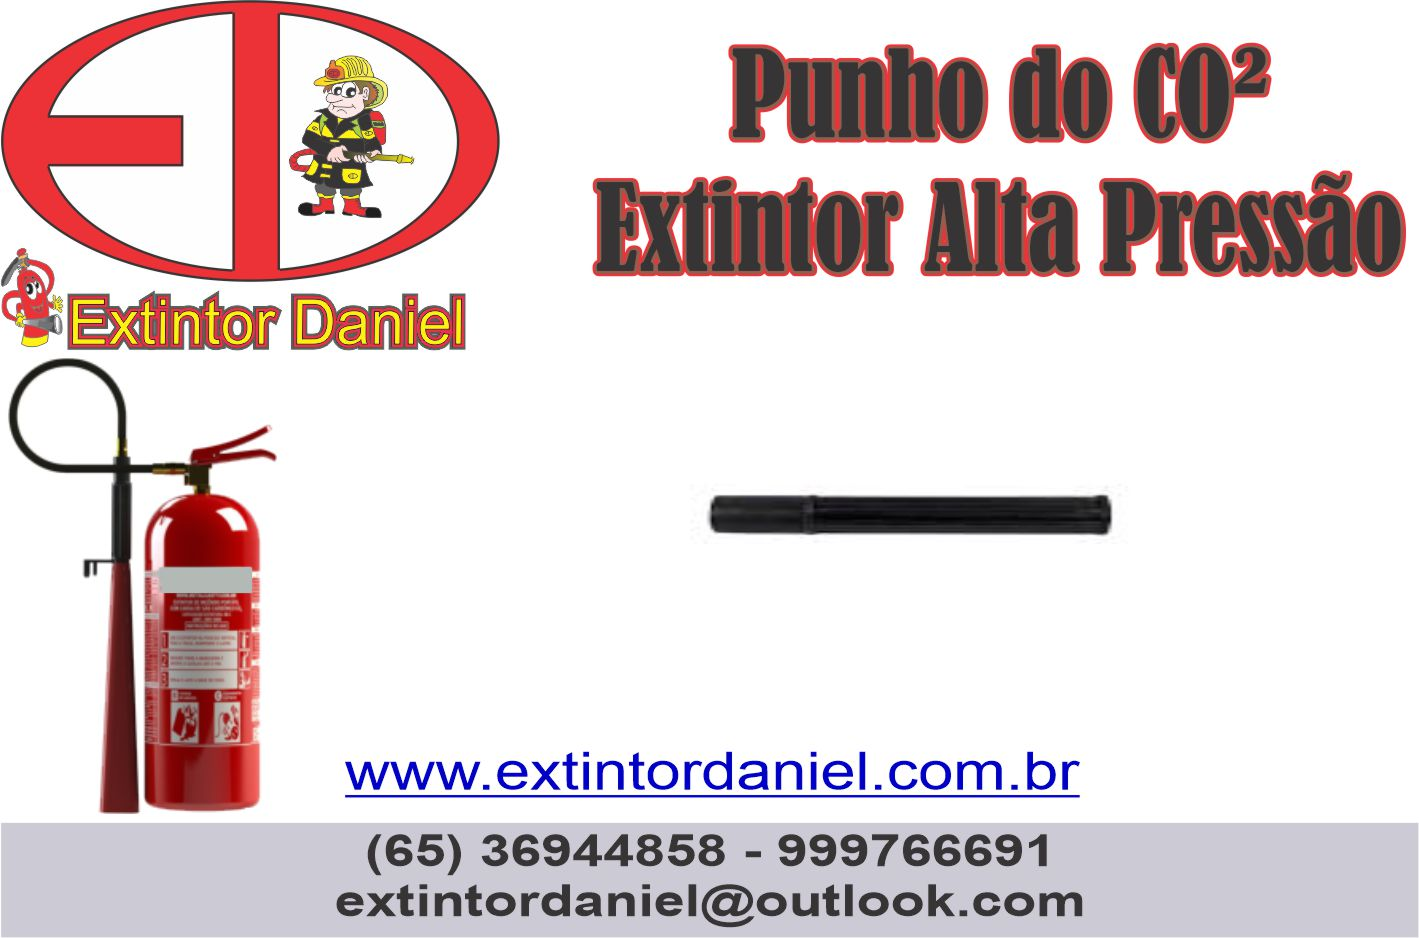 https://0201.nccdn.net/1_2/000/000/187/453/punho-co2.jpg